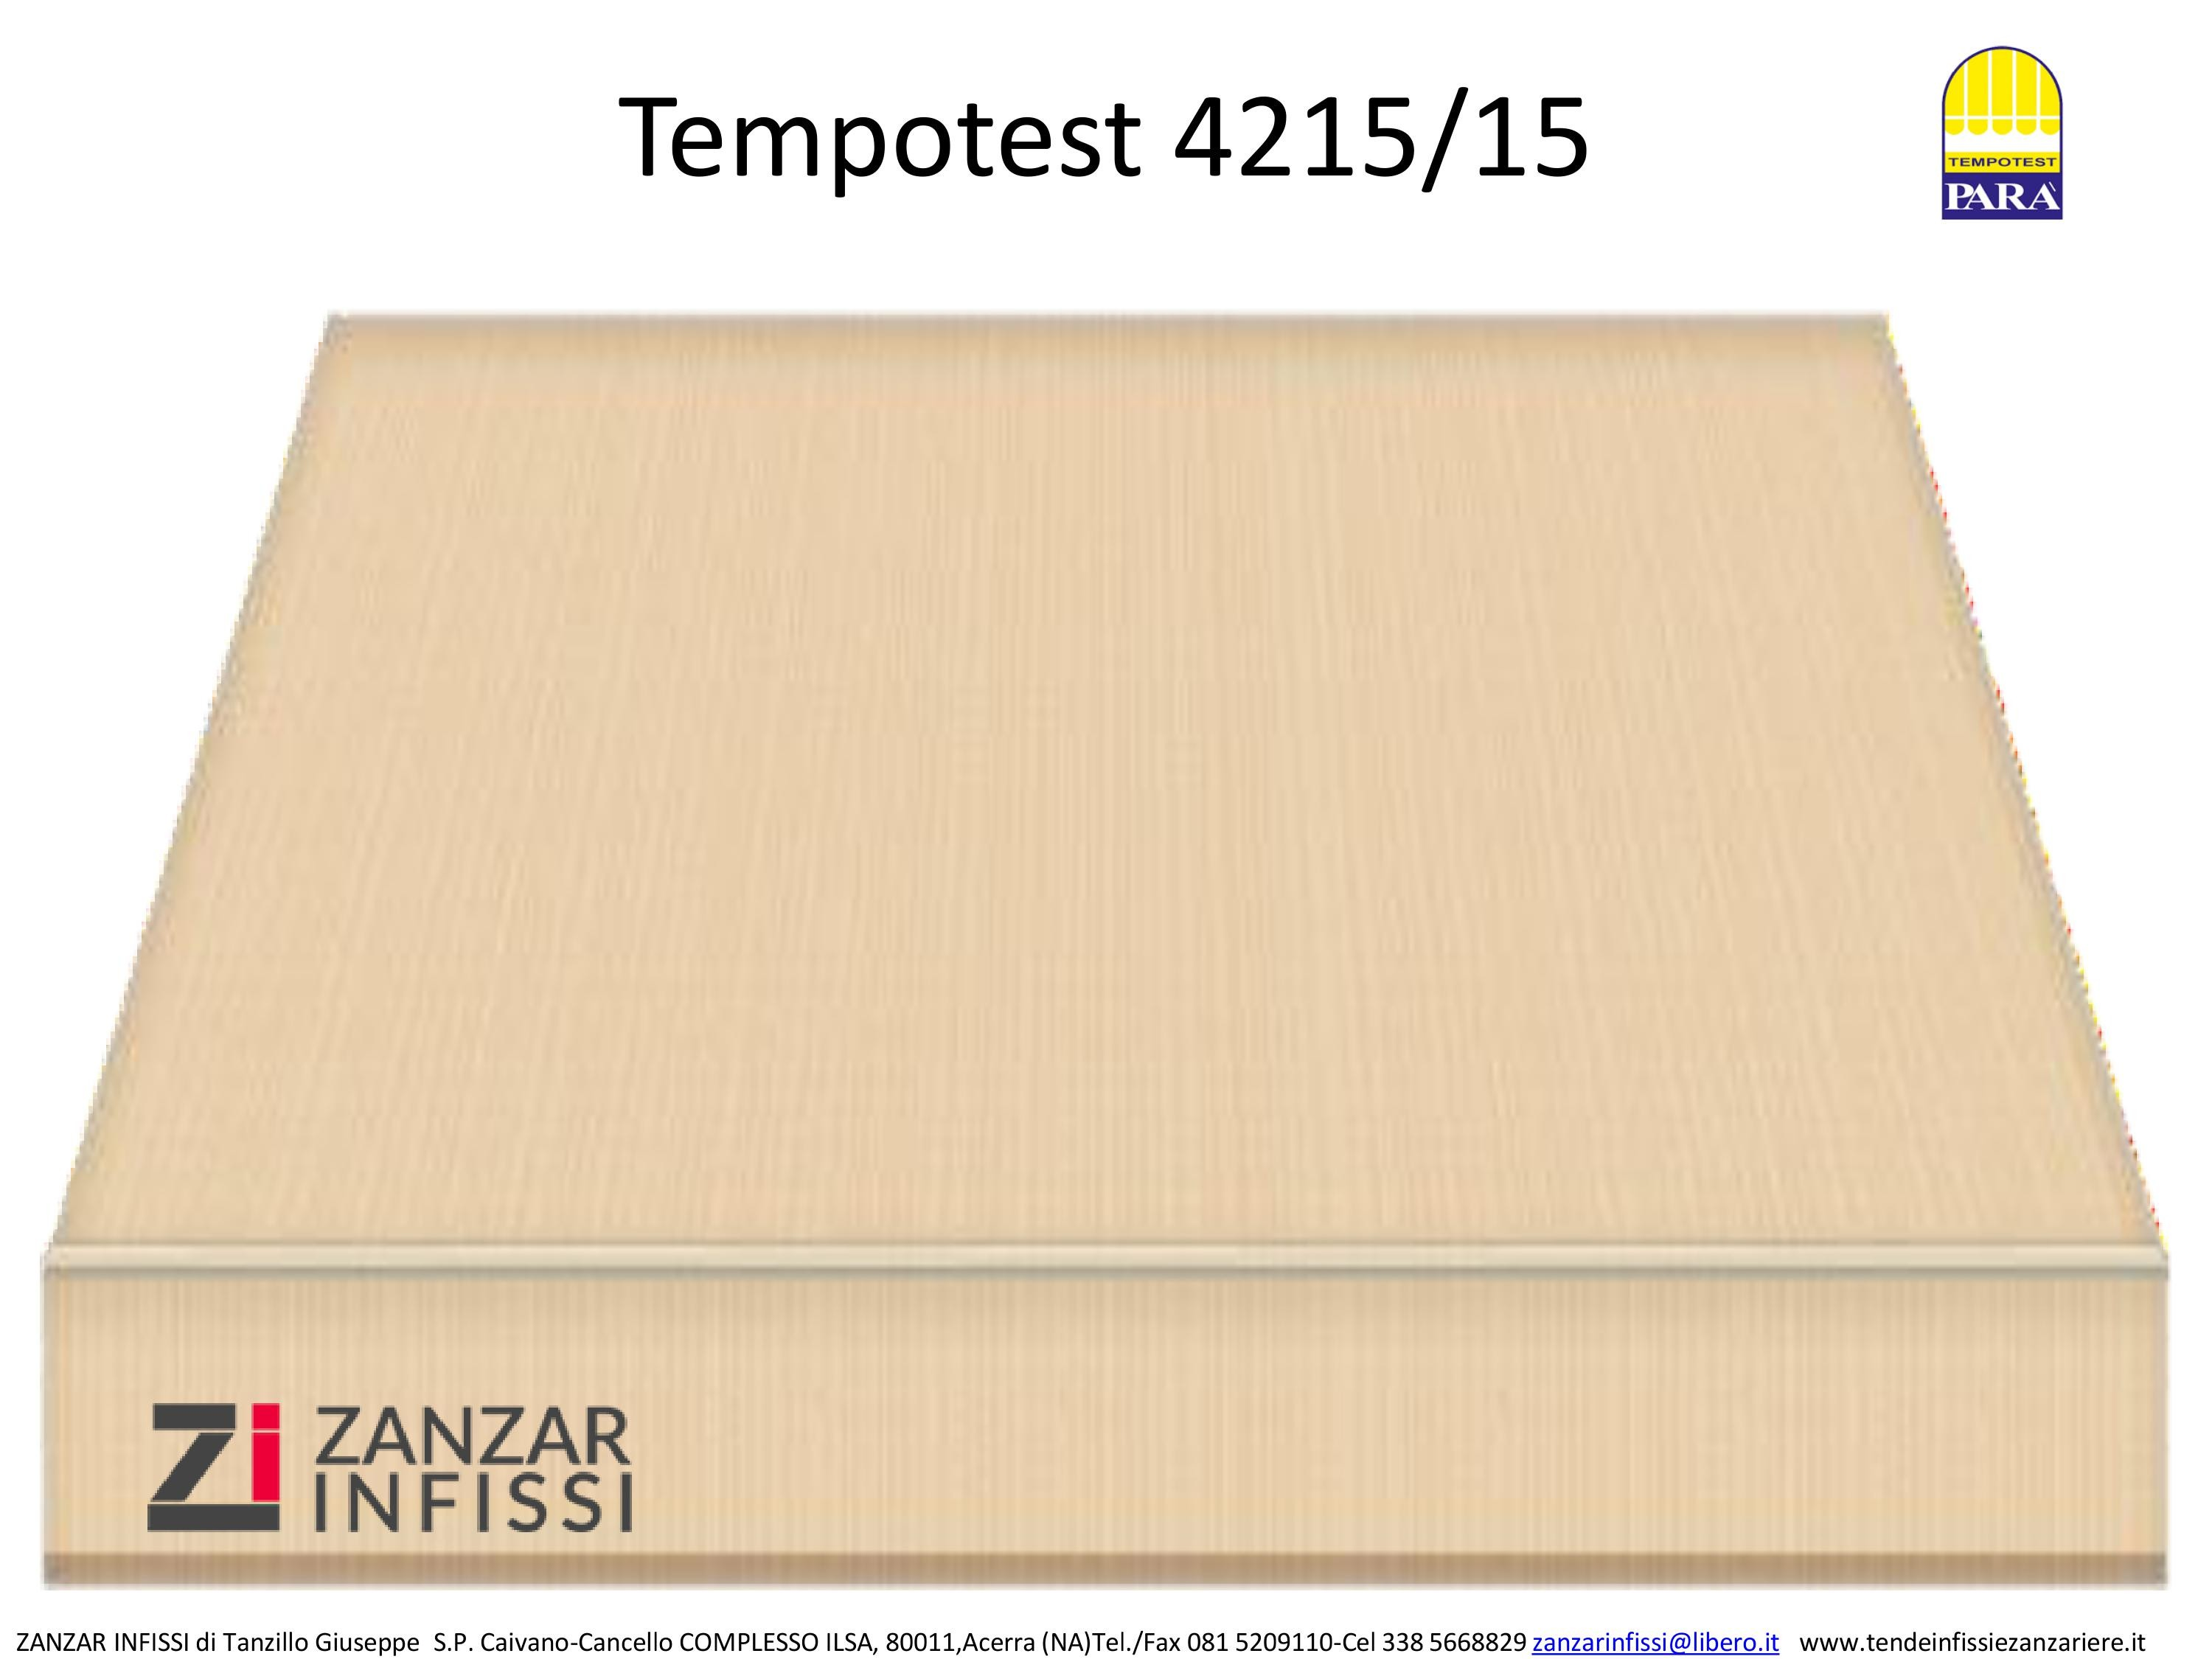 Tempotest 4215/15